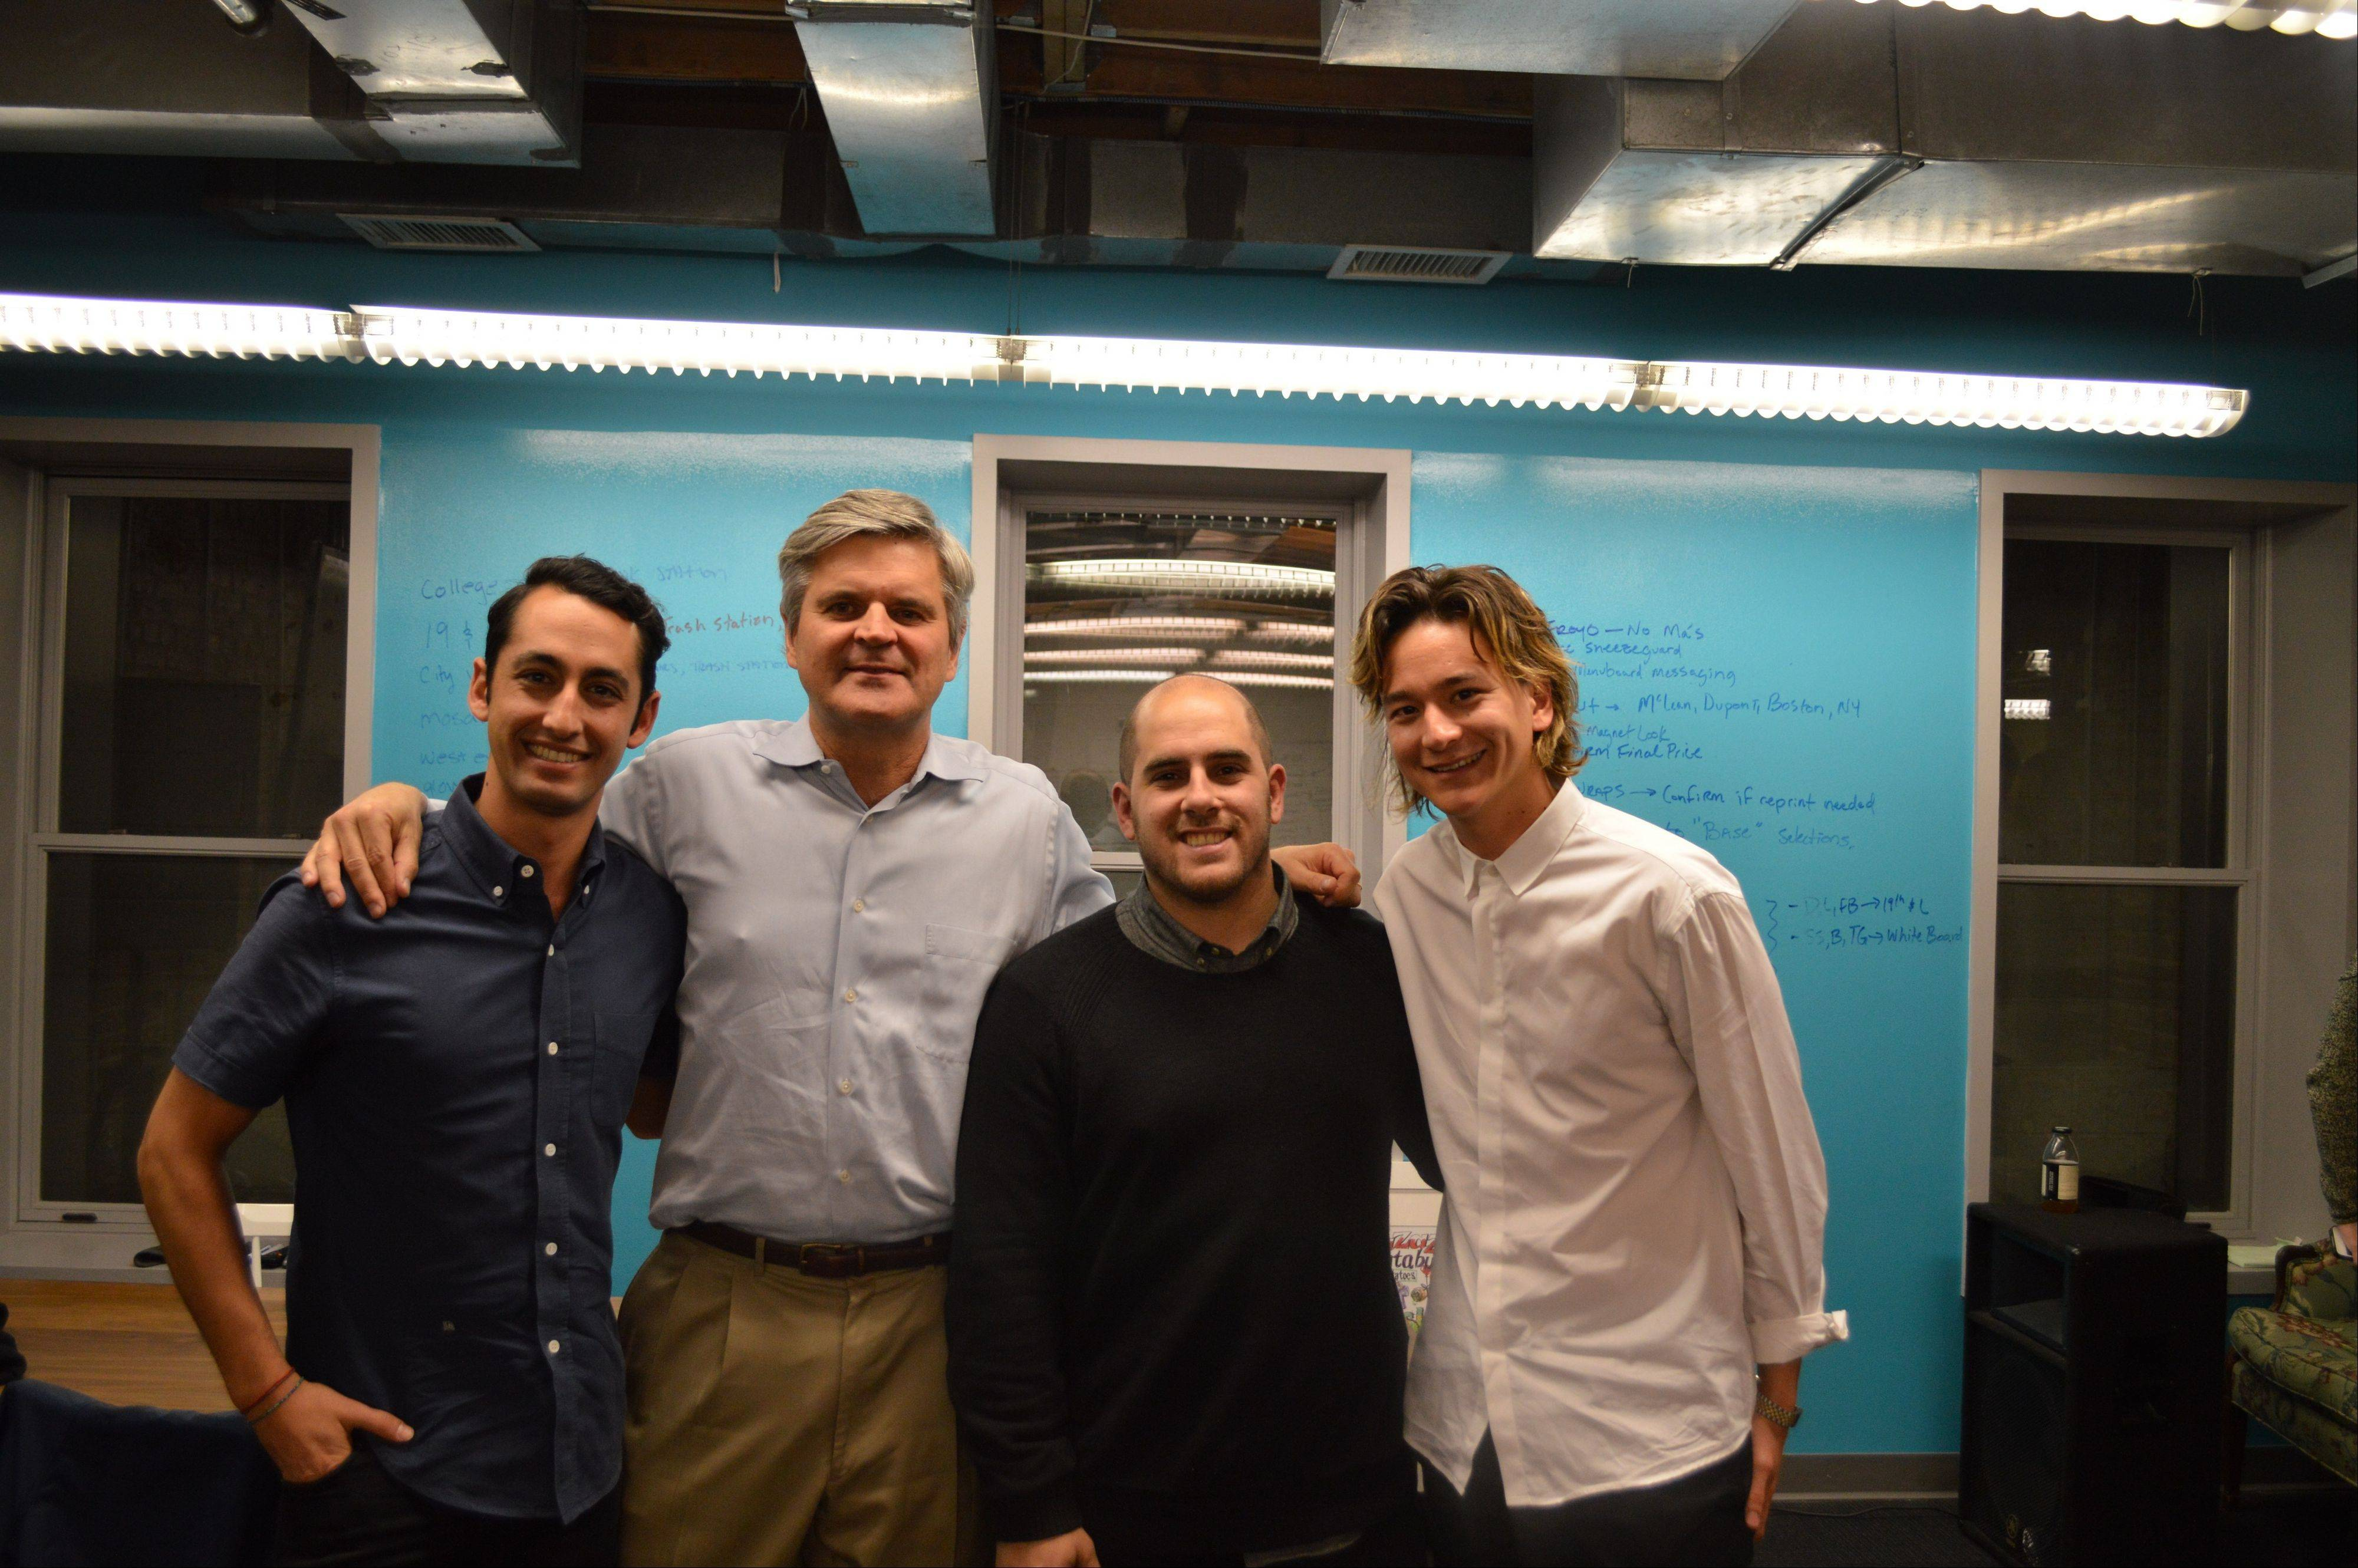 This undated image provided by Sweetgreen shows from left, Sweetgreen co-founder Jonathan Neman with backer Steve Case, co-founder of AOL and the Revolution fund, and his restaurant chain co-founders Nicolas Jammet and Nathaniel Ru. Case initially invested in Sweetgreen about a year ago and in December his Revolution fund invested $22 million.